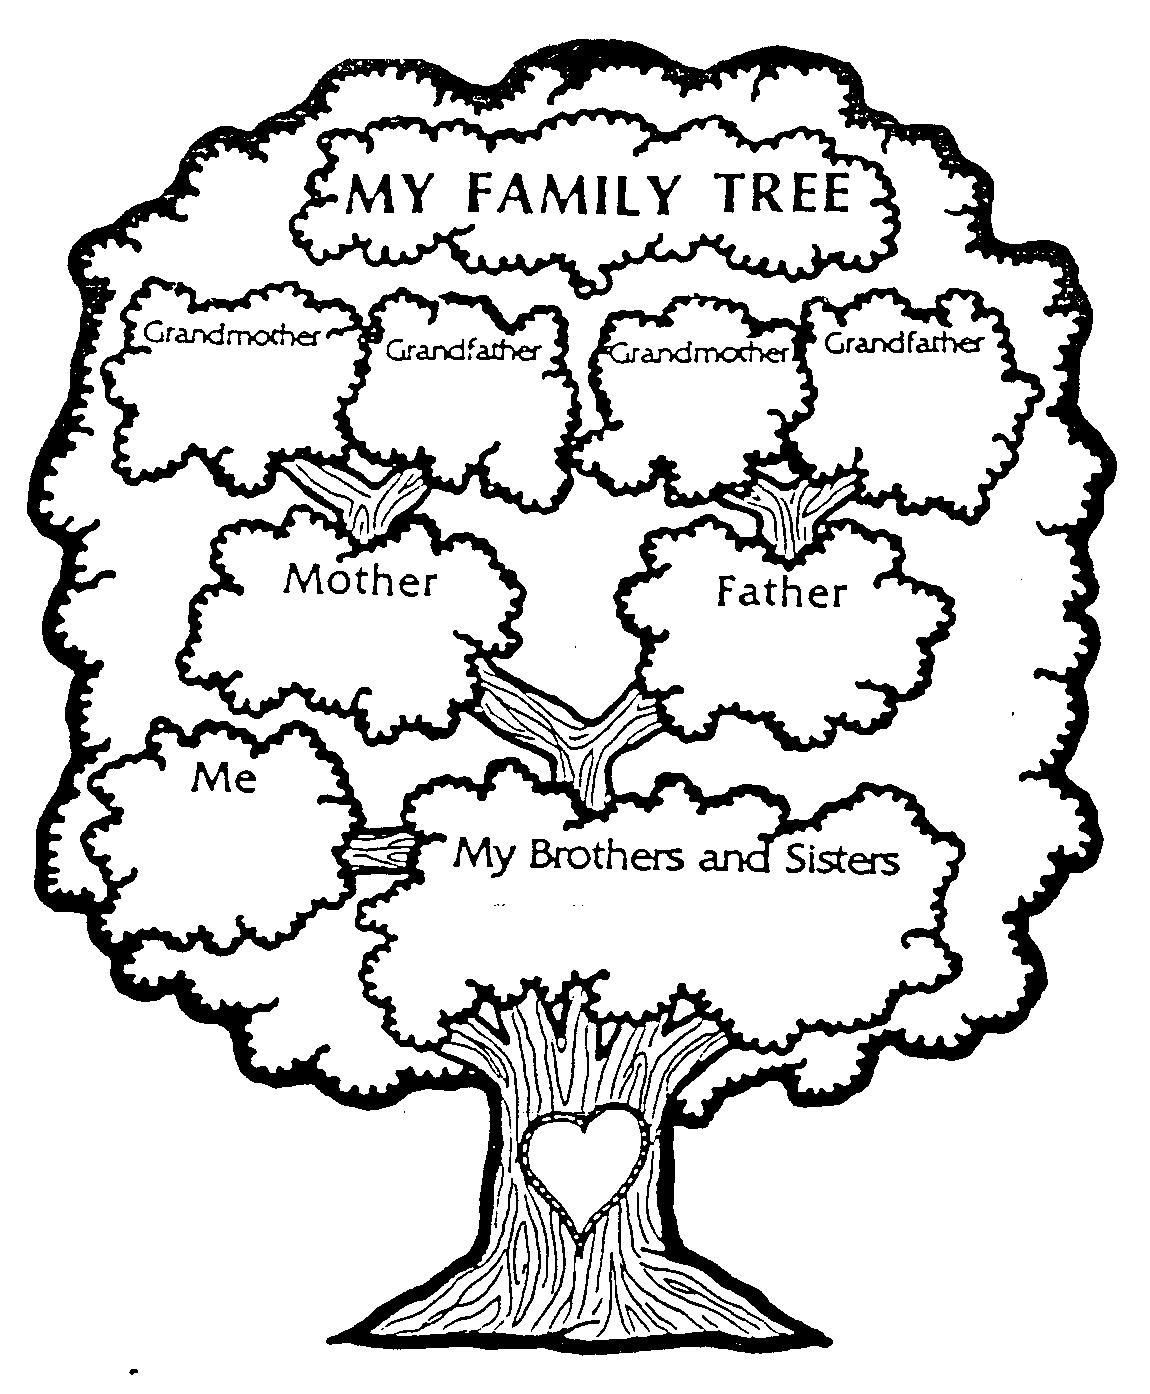 Worksheets Family Tree Worksheet For Kids family tree includes a nice list of picture books about history